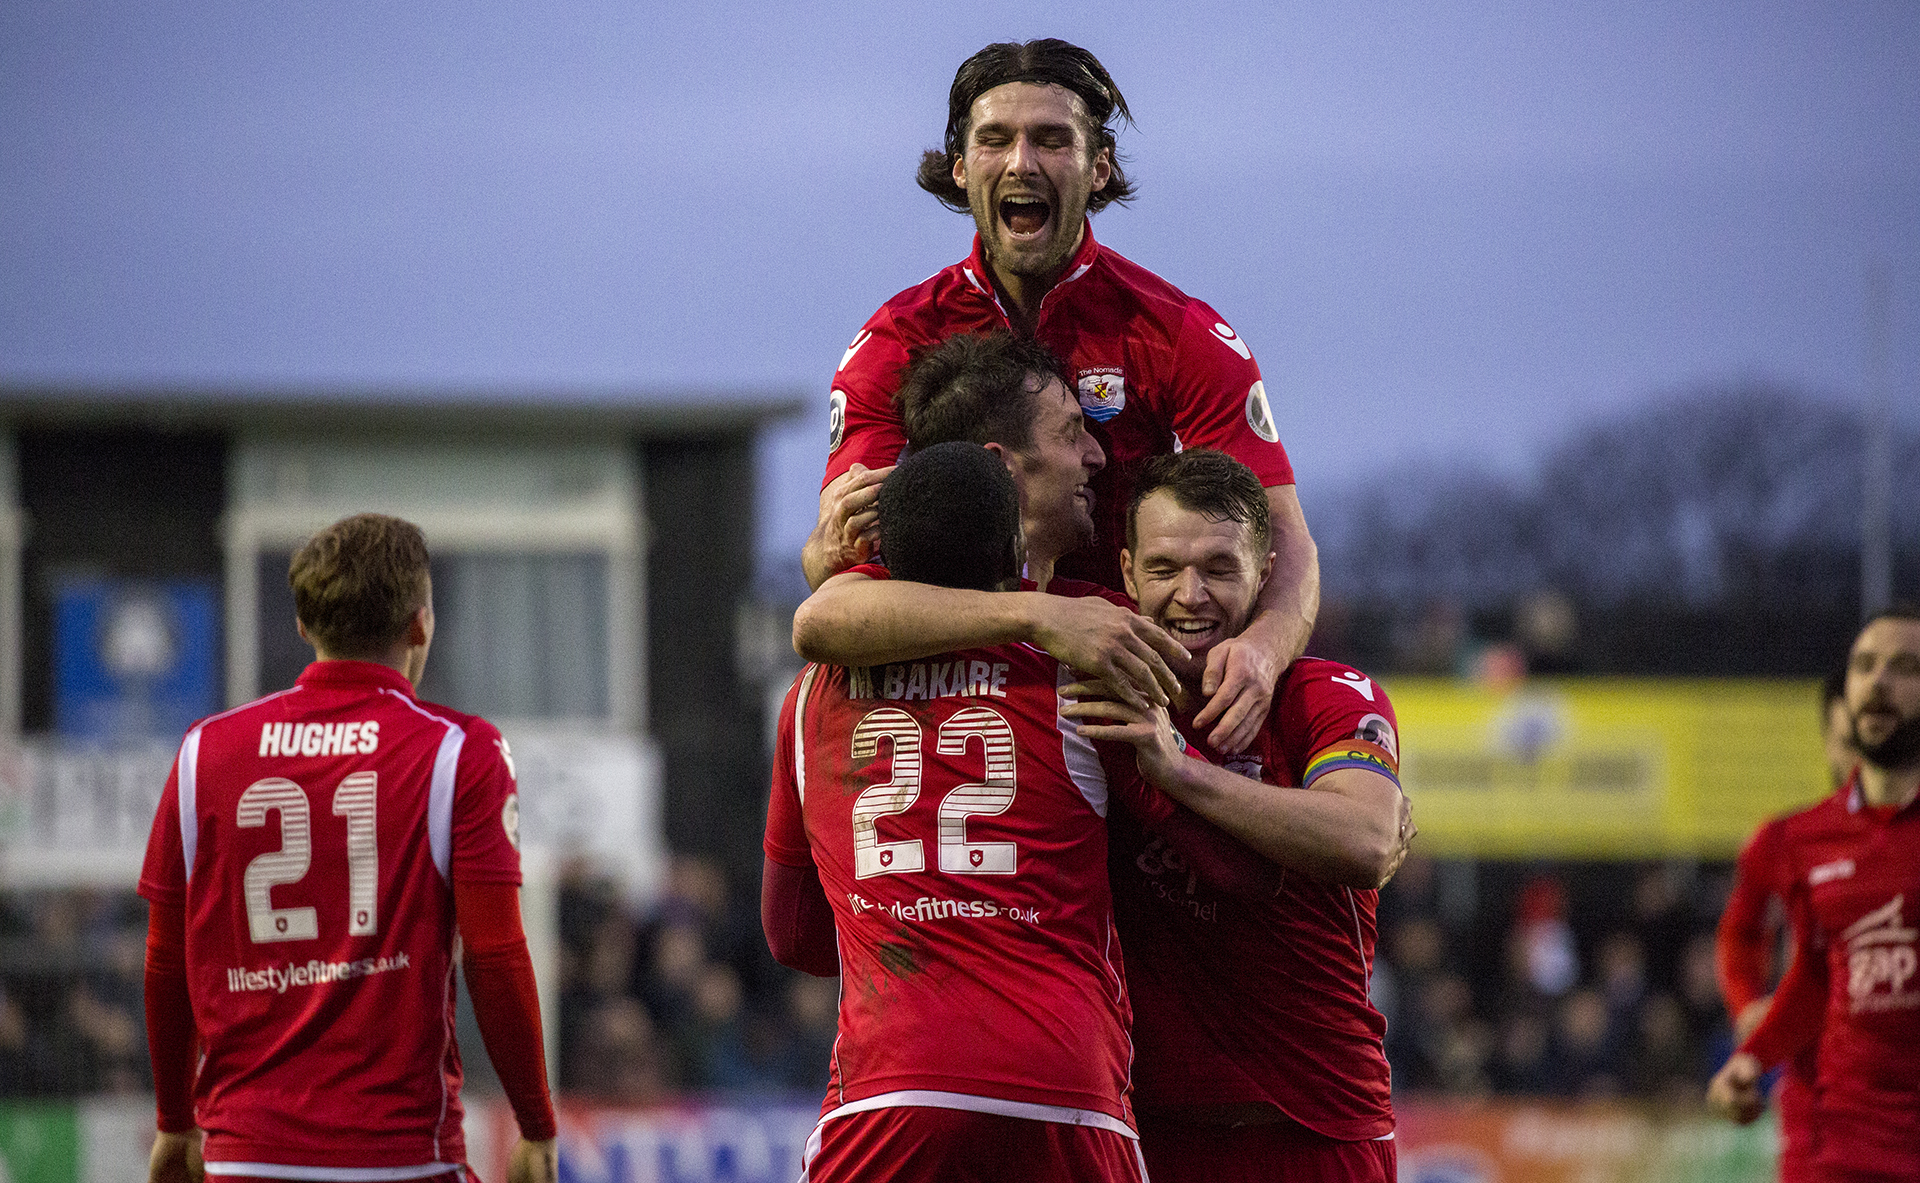 The Nomads celebrate Andy Owens' opening goal - © NCM Media